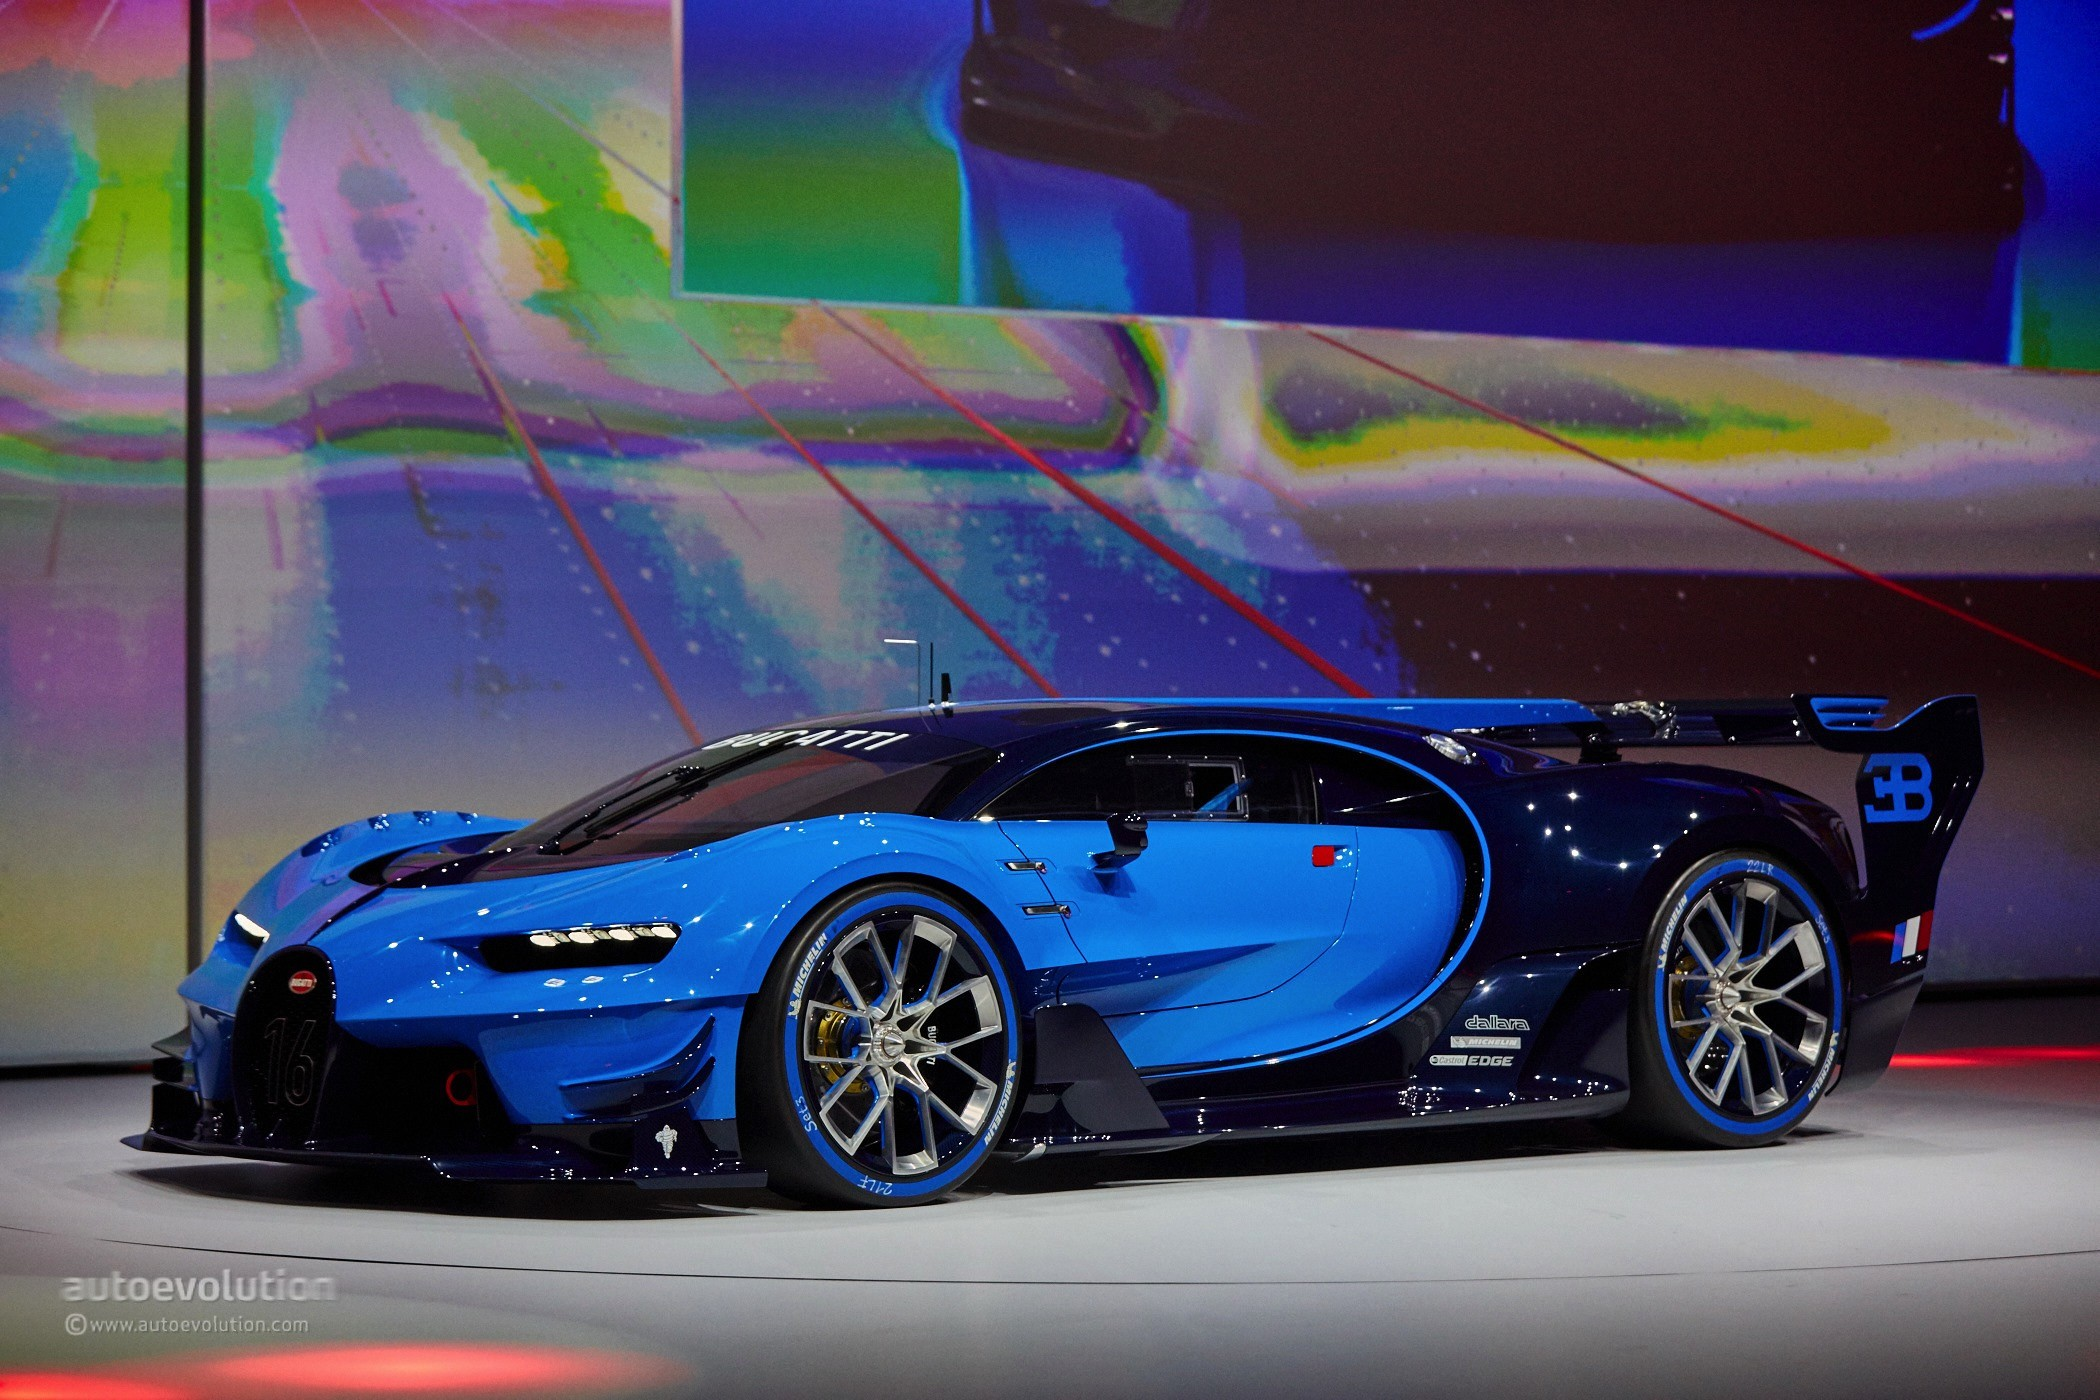 2017 Ford Gt Hd Wallpaper Bugatti Vision Gran Turismo Is Far From The Chiron We